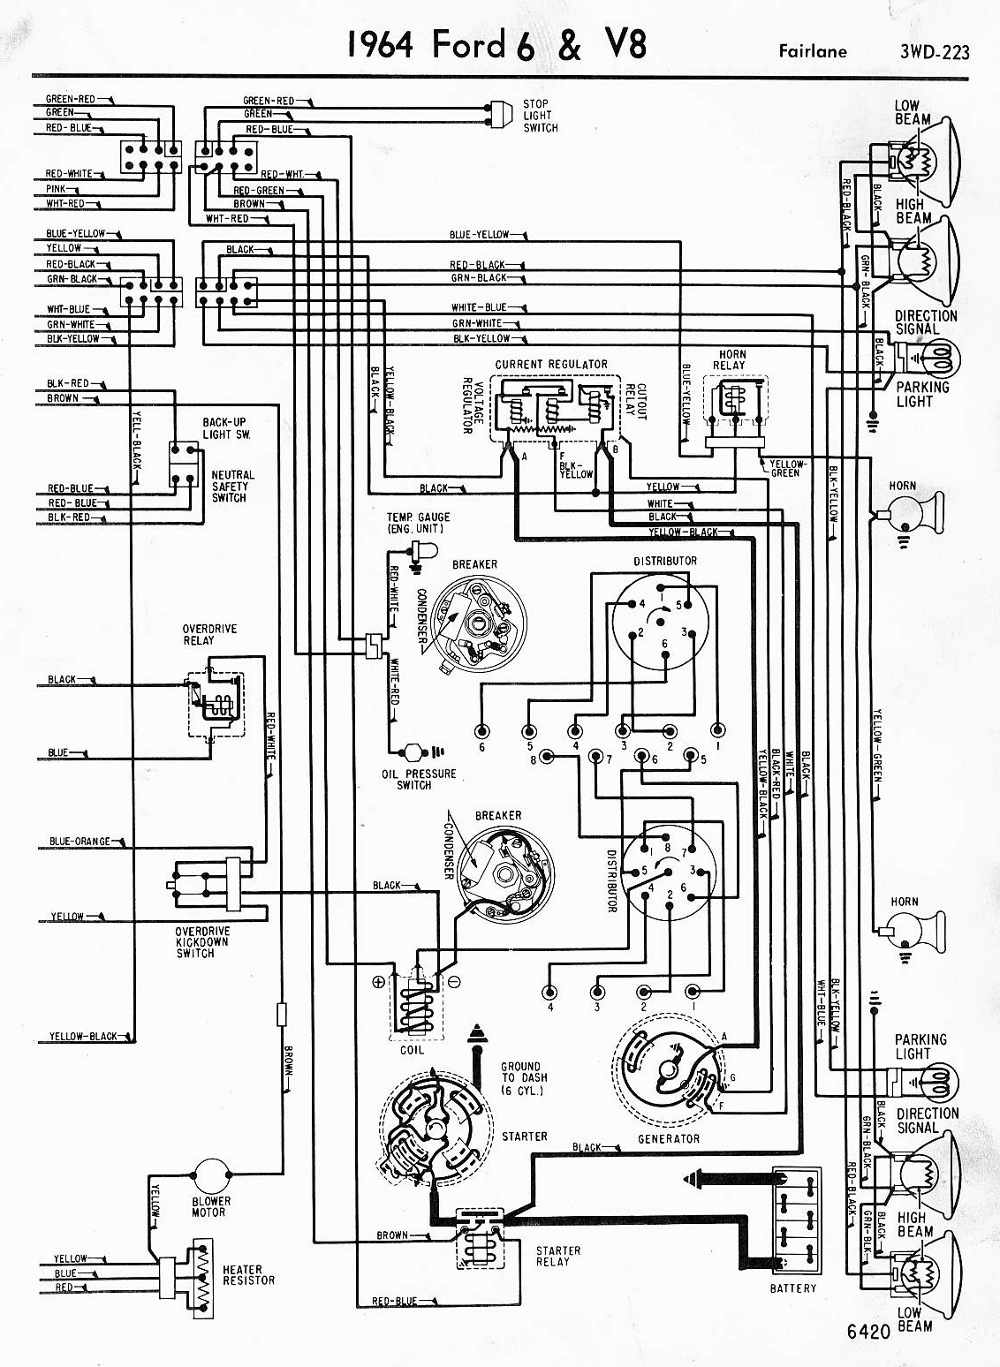 Excellent 1967 Galaxie Wiring Diagram Diagram Data Schema Wiring Cloud Cranvenetmohammedshrineorg